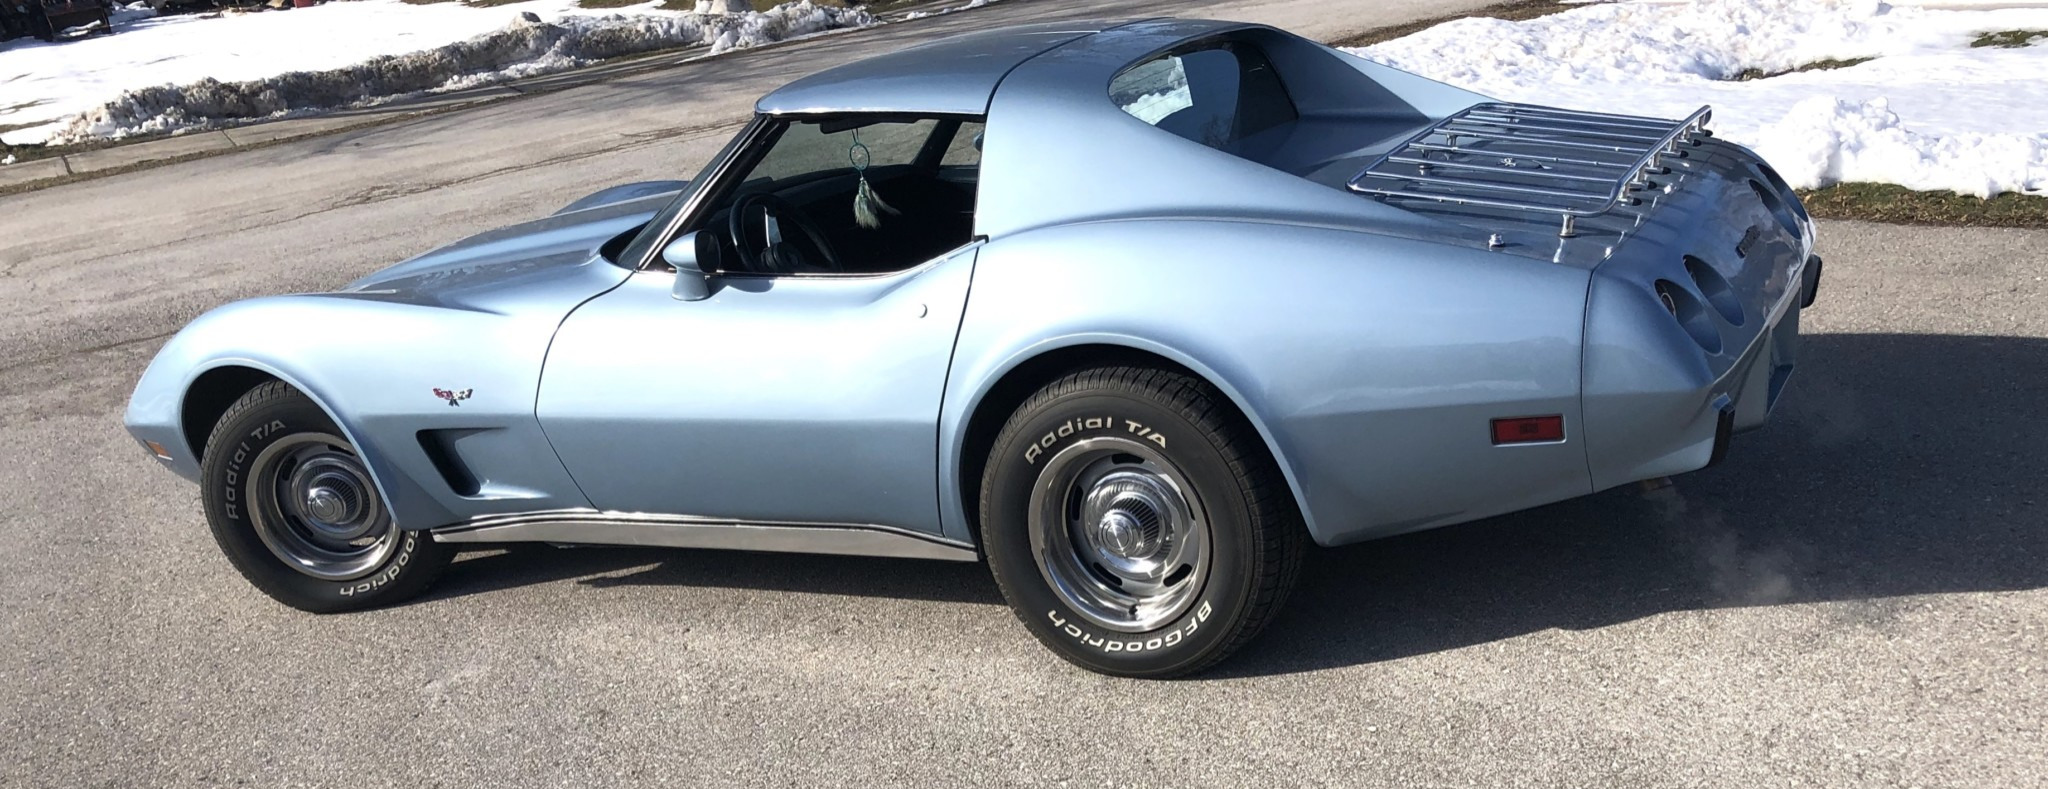 This 1977 Corvette is available for sale at bringatrailer.com